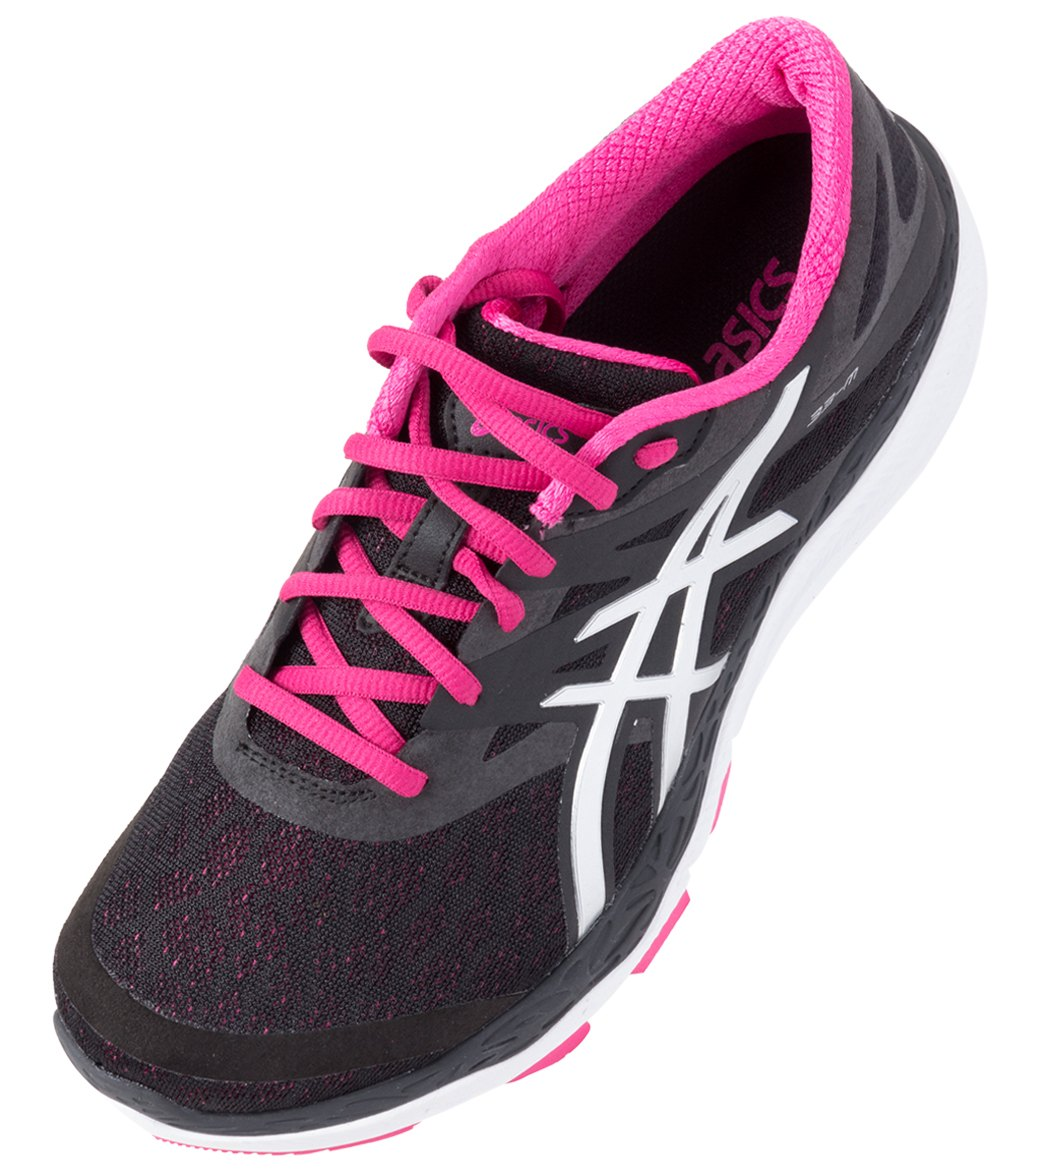 Asics Women s 33-M Running Shoes at SwimOutlet.com - Free Shipping ccdd7815782